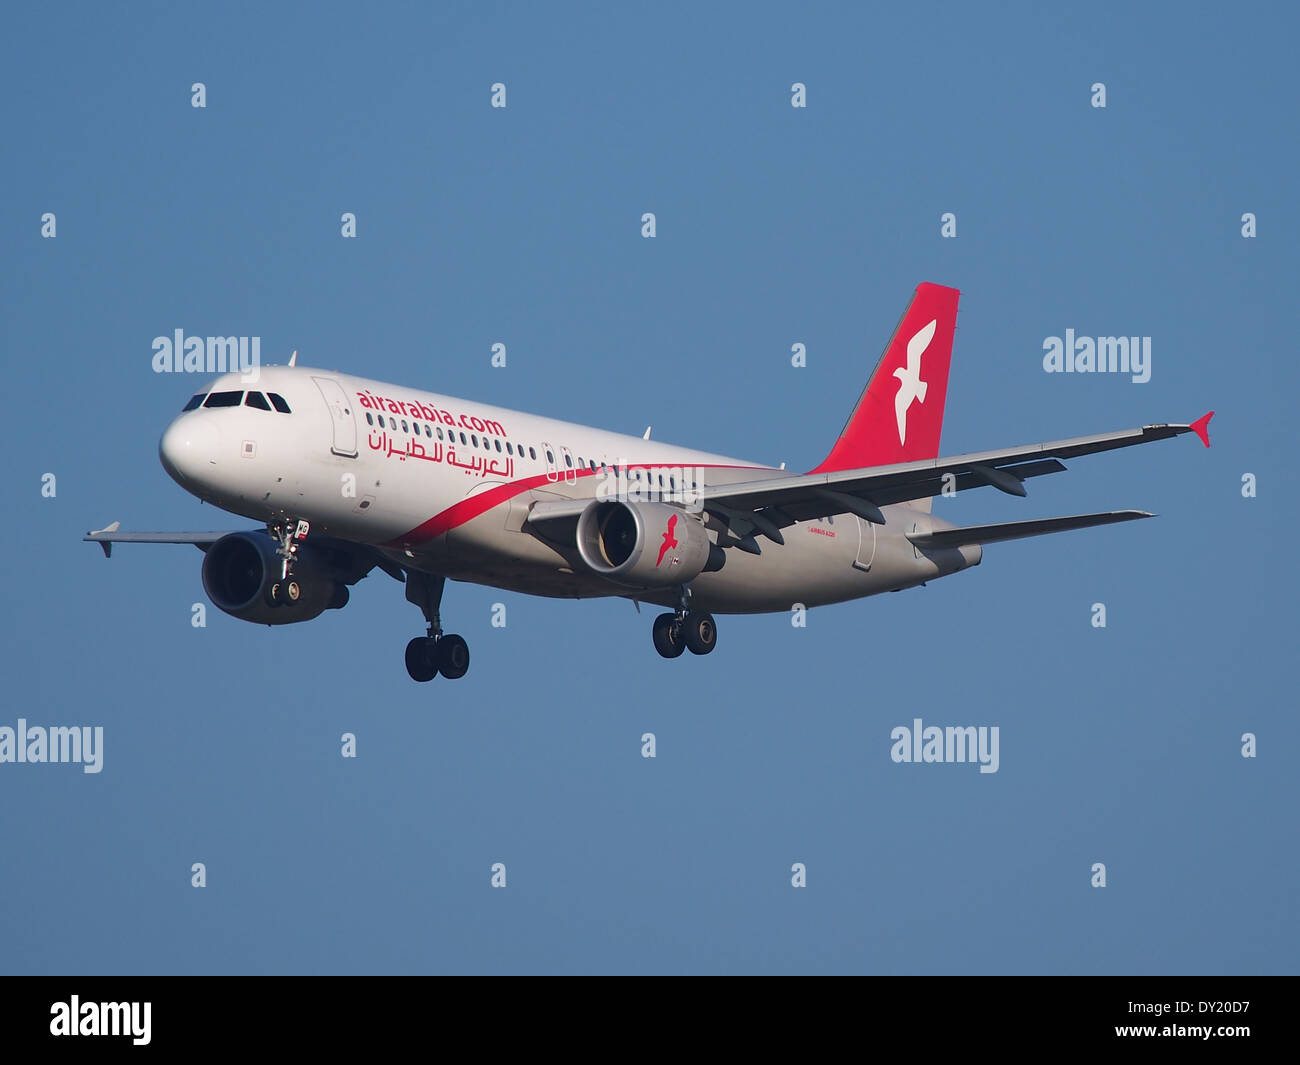 CN-NMG Air Arabia Maroc Airbus A320-214, landing at Schiphol (AMS - EHAM), Netherlands, pic1 - Stock Image